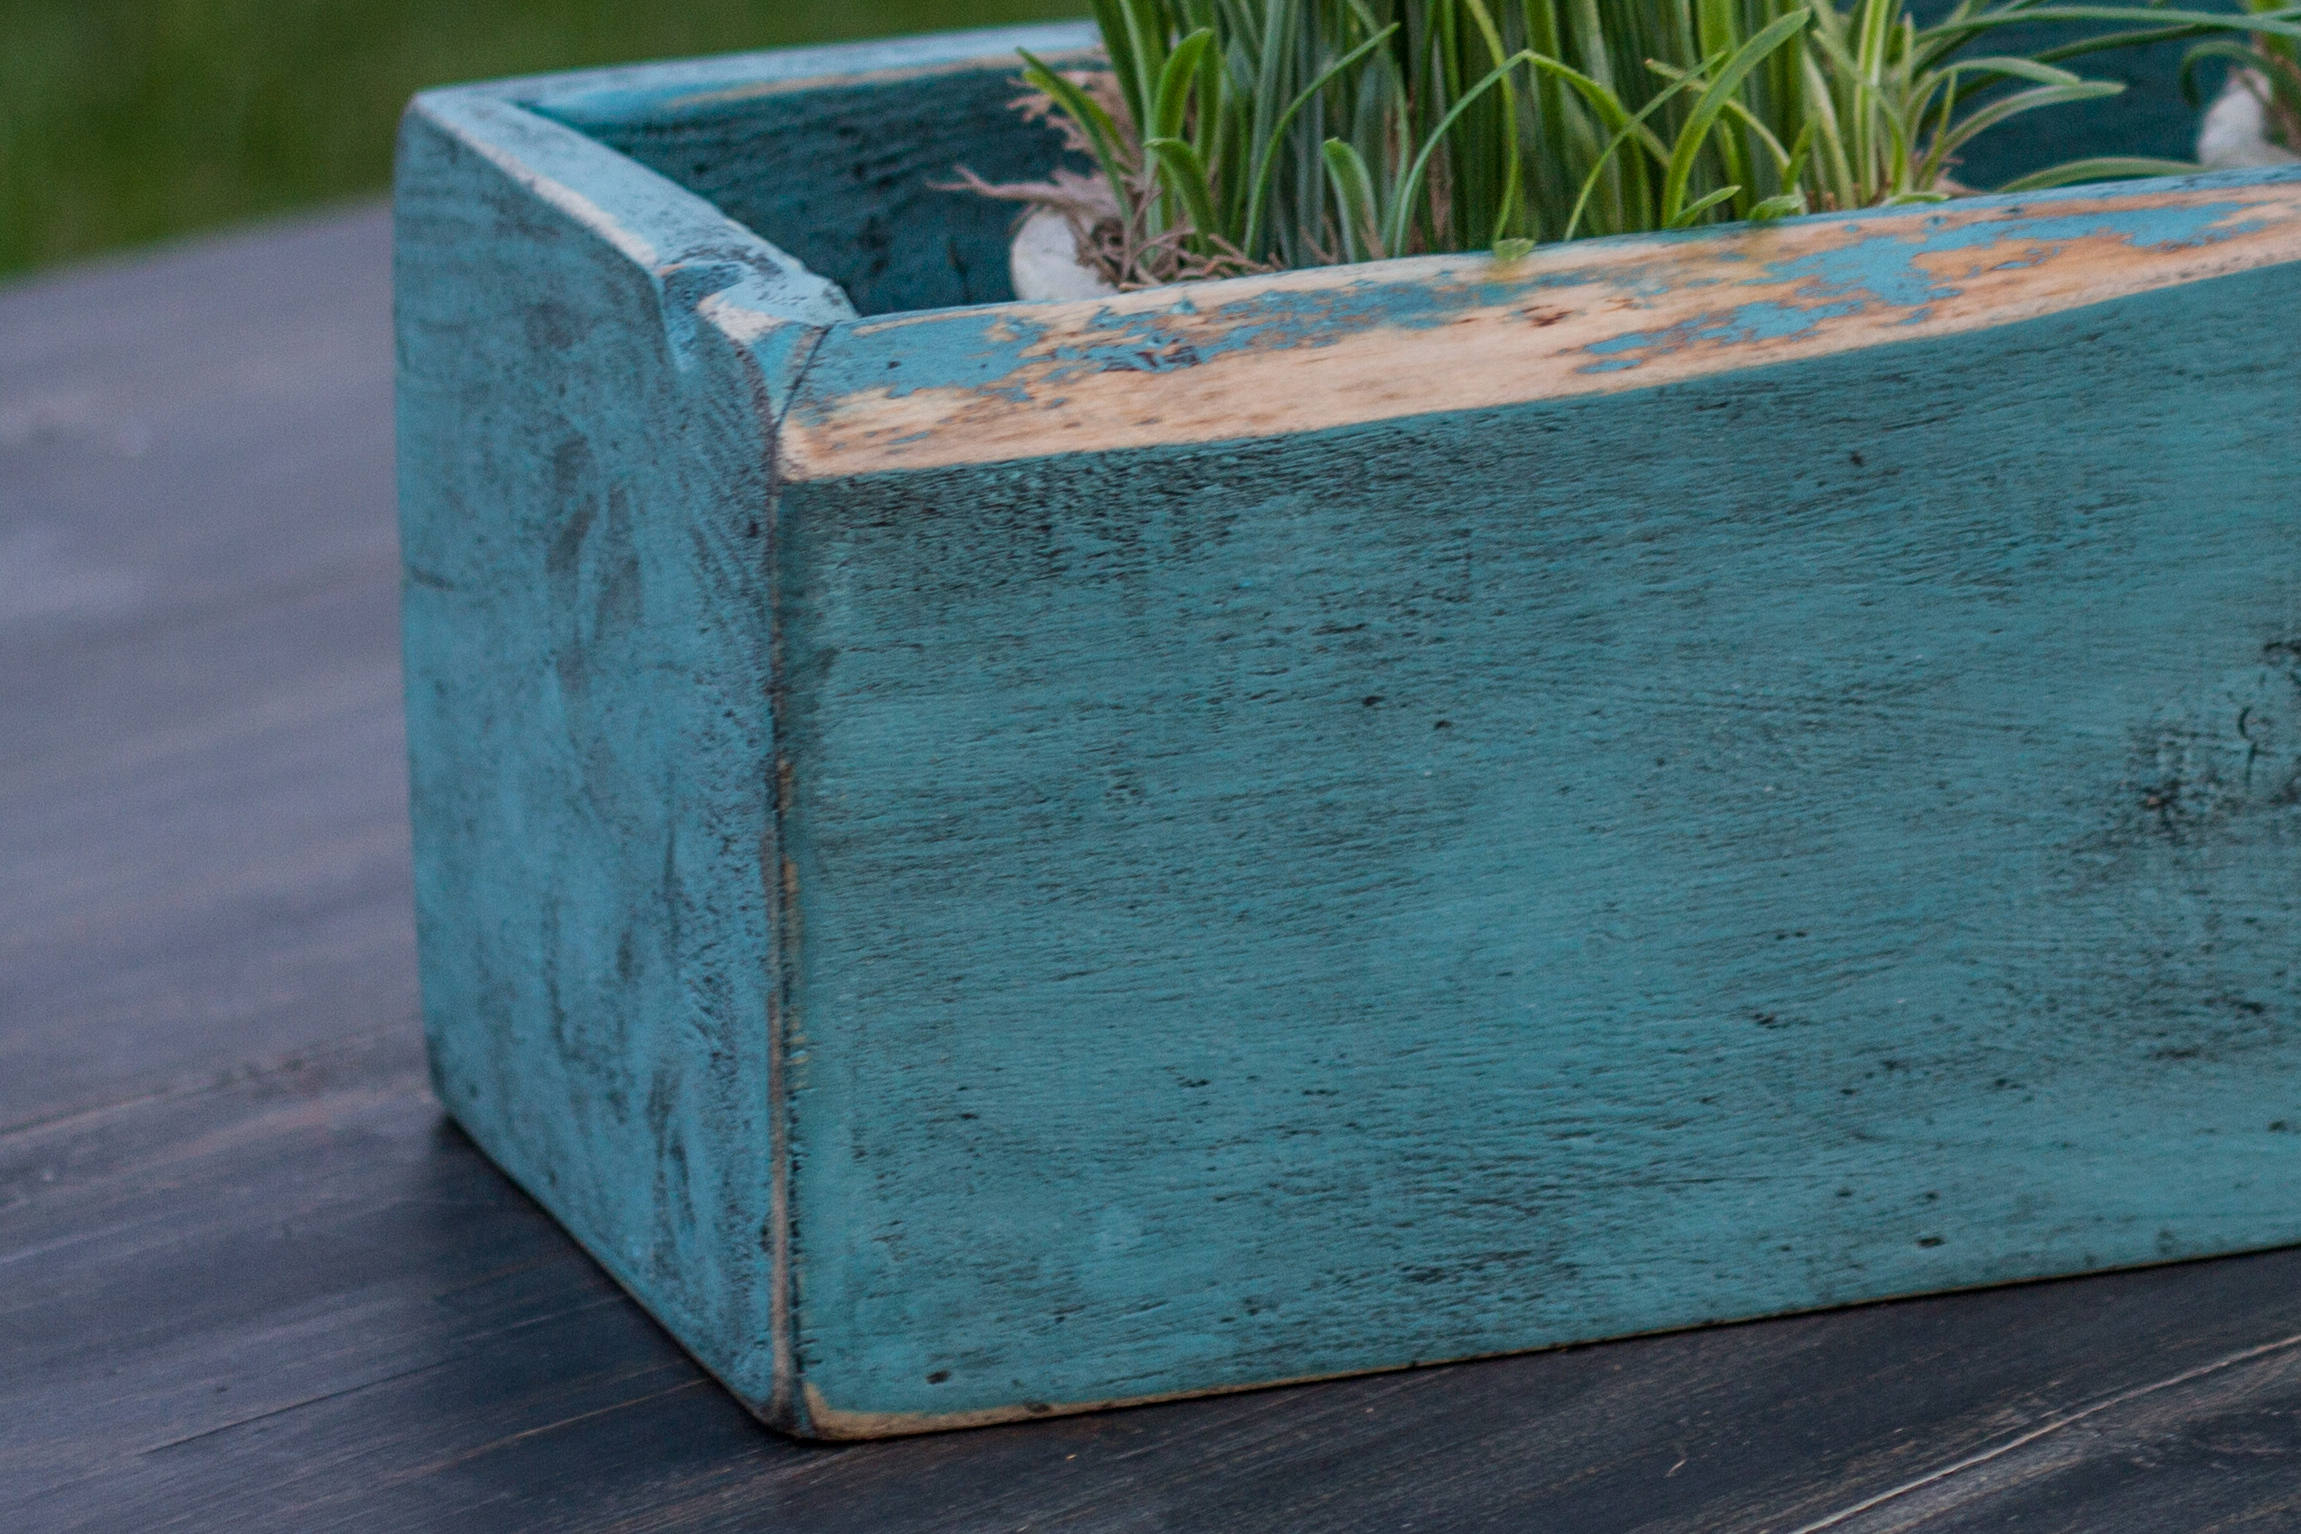 Rustic Fixer-Upper Type Wood Table Box Decor